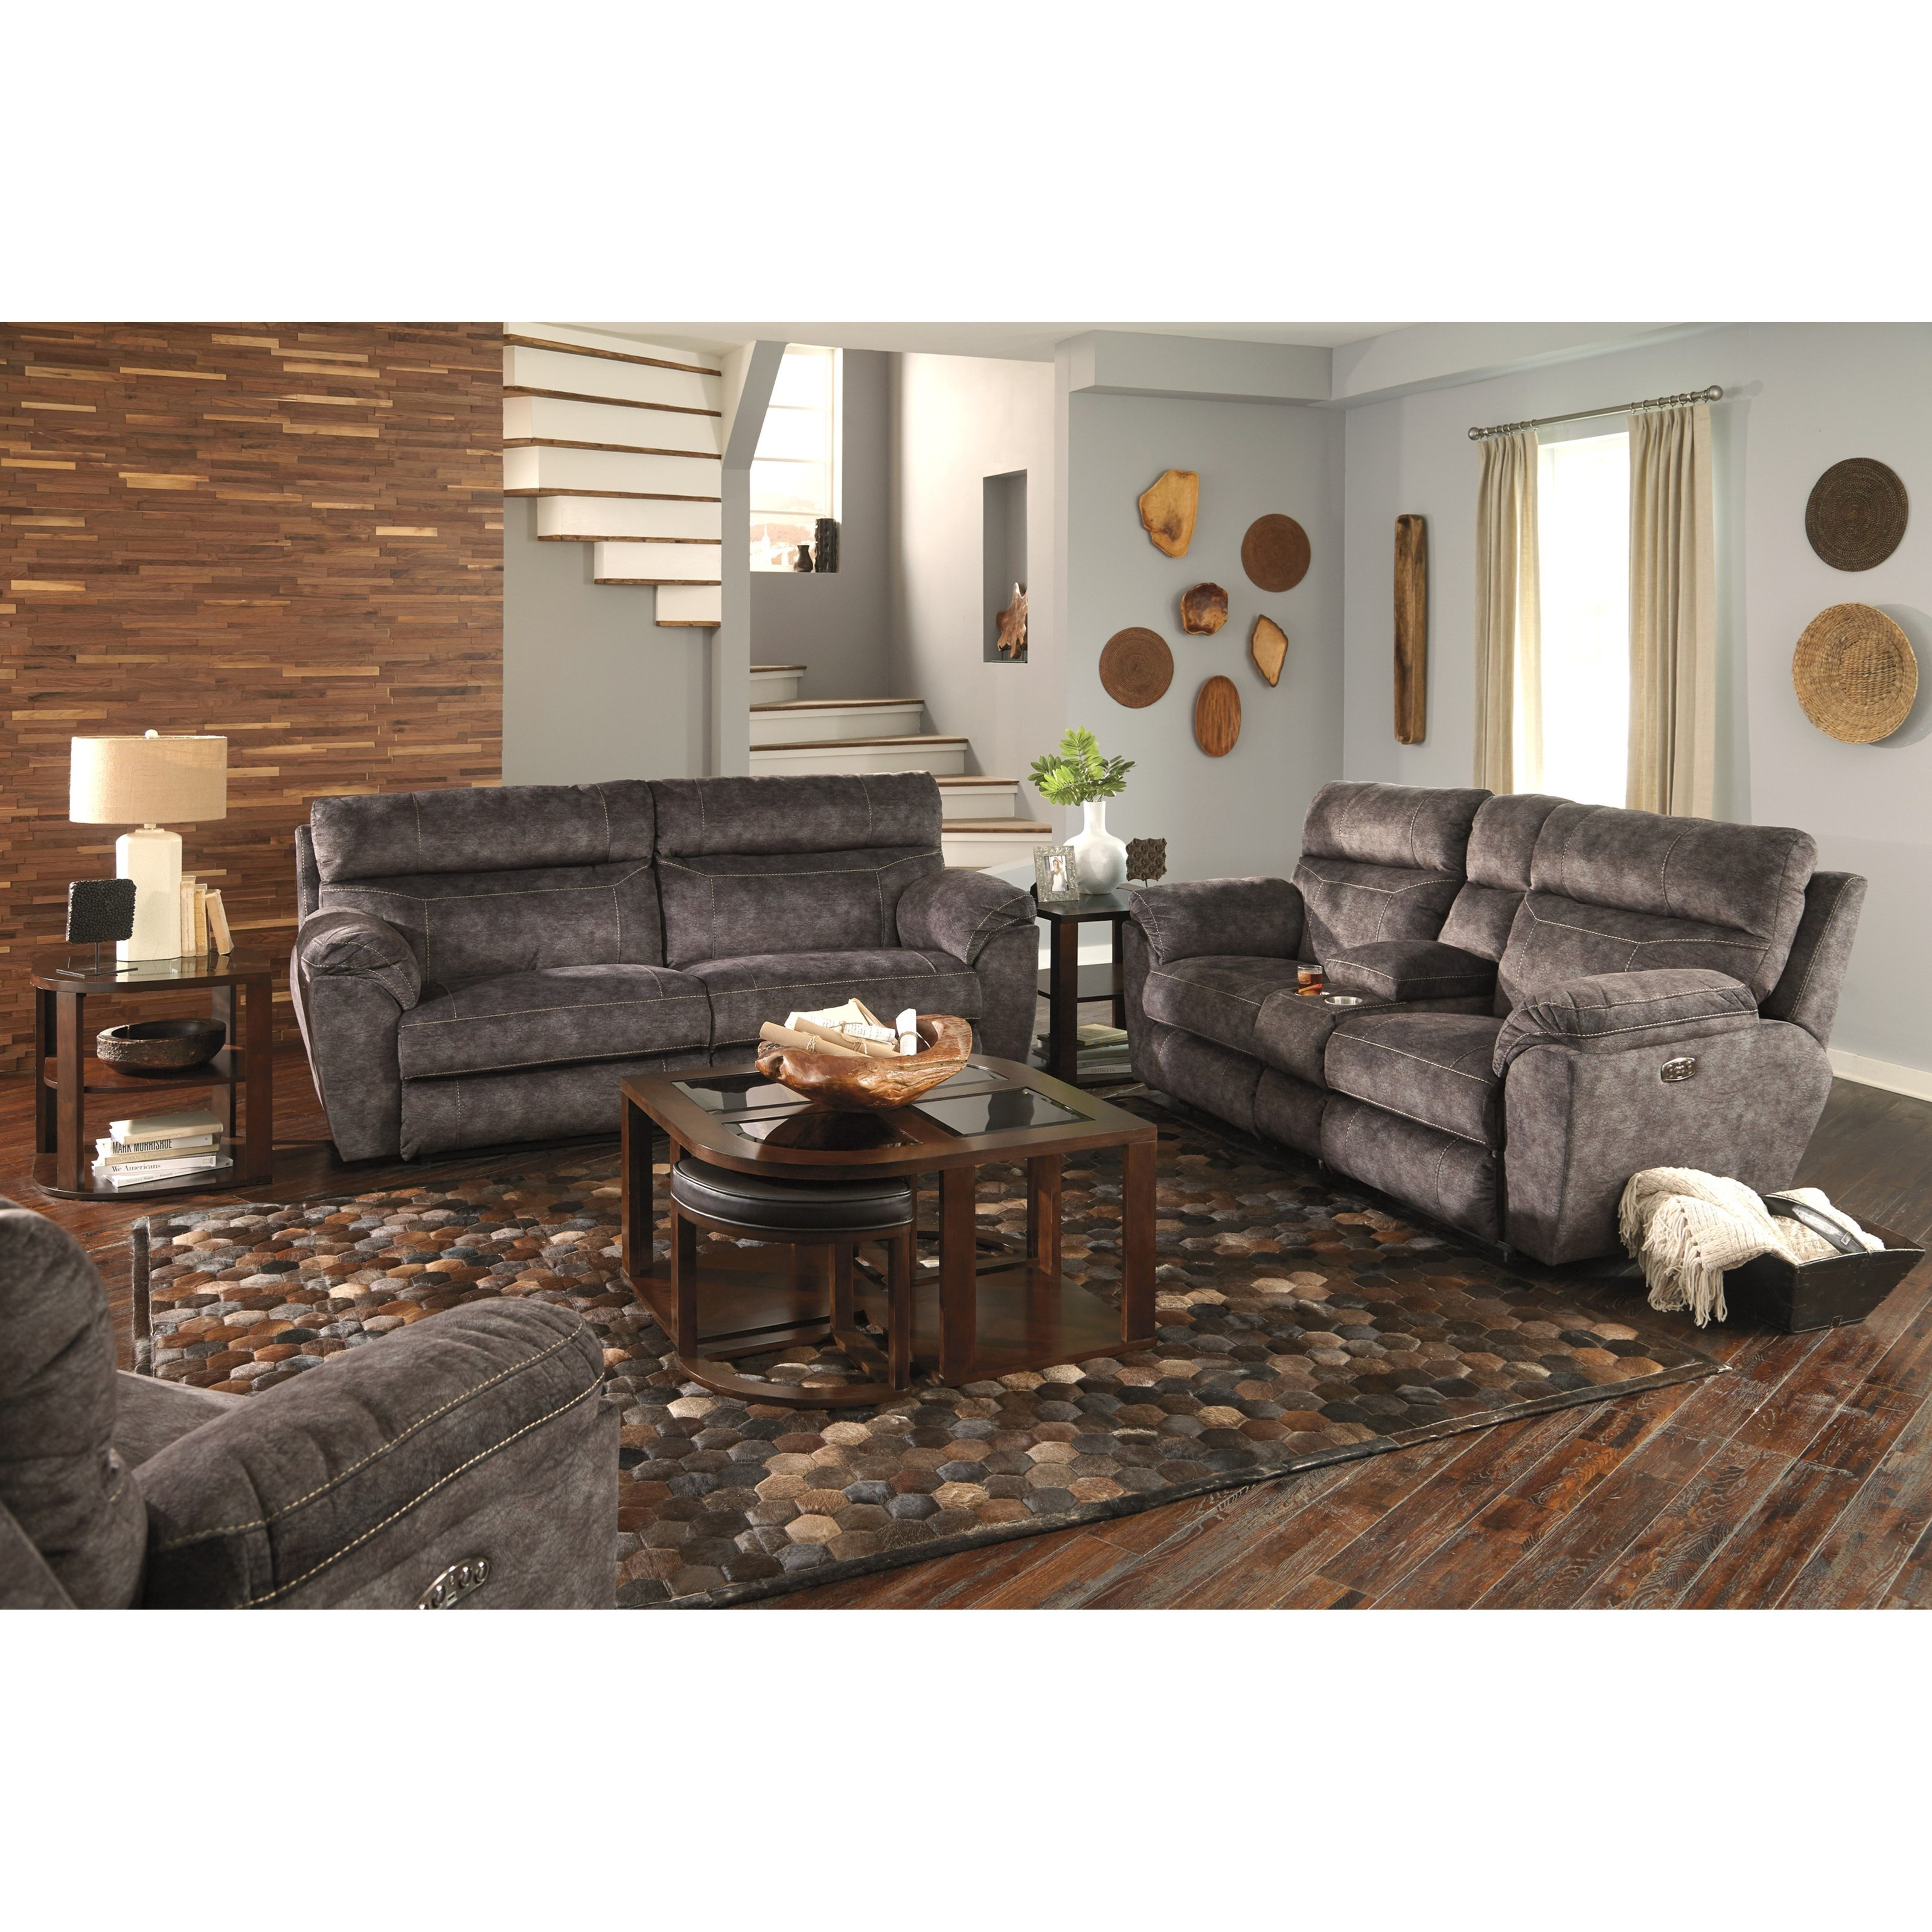 Sedona Reclining Living Room Group by Catnapper at Wilson's Furniture